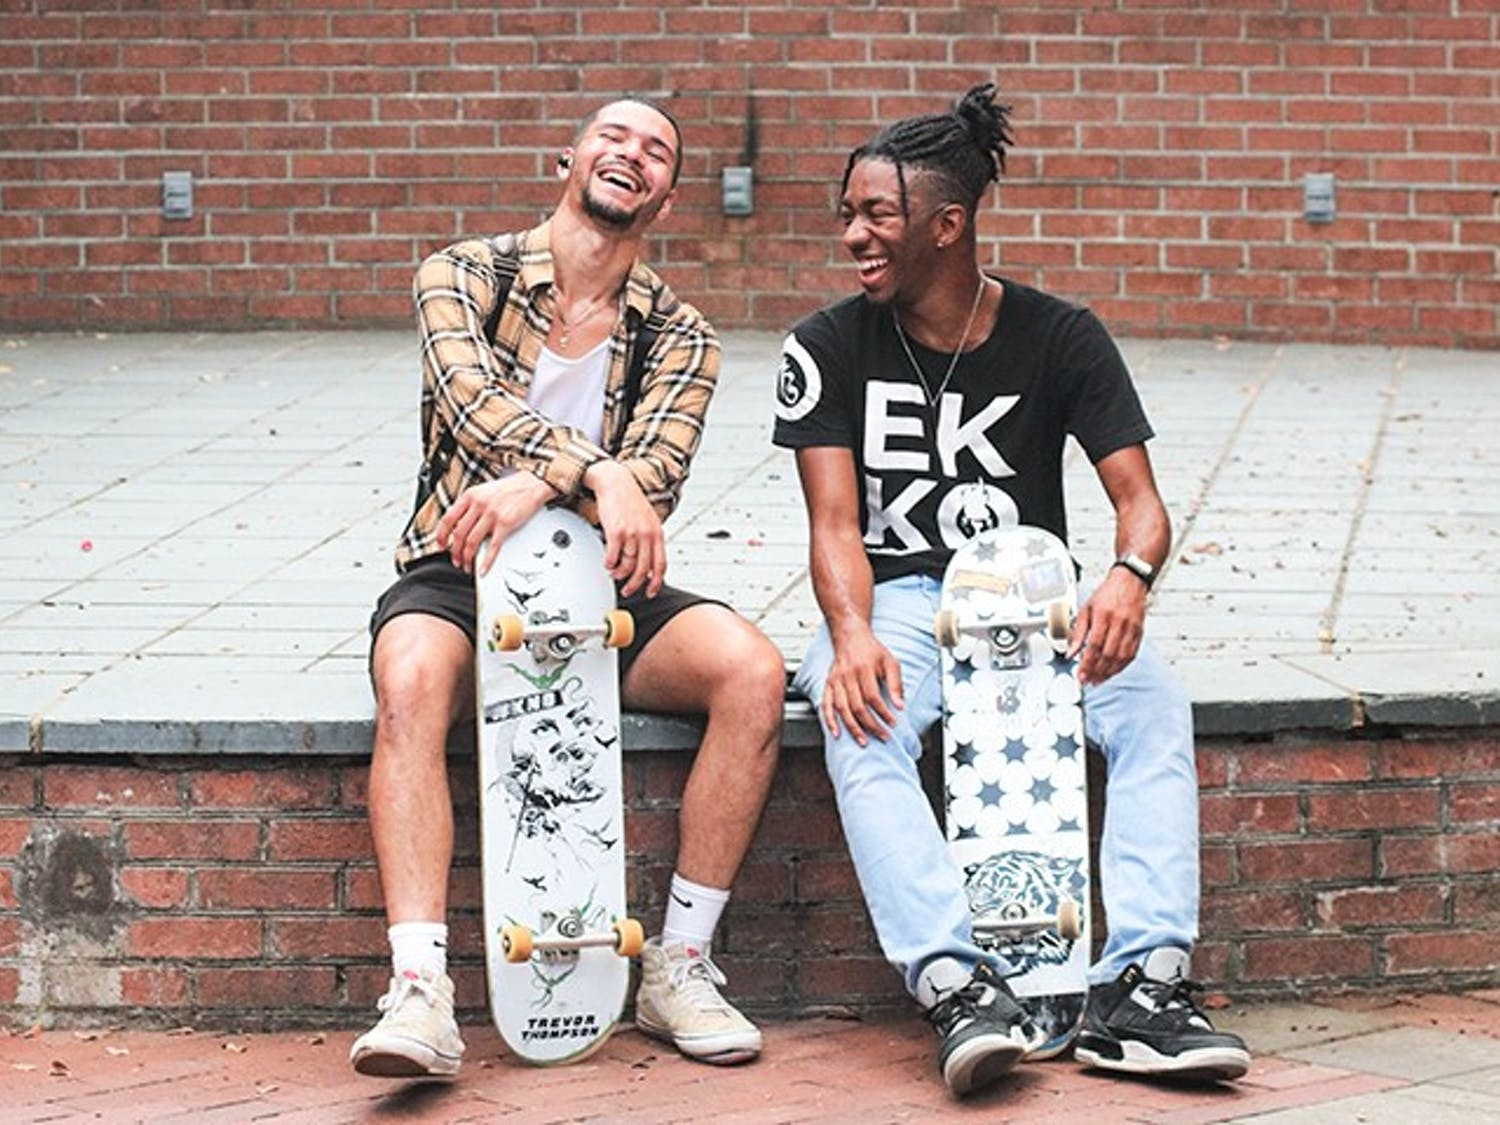 Second-year computer science student Andrew Dhillon, president of the Gamecock Skate Club, sits next to second-year computer engineering student Ta'Rajay Bowie, the vice president. Club members often skate outside Russell House and together have formed a community promoting health and unity through skateboarding.